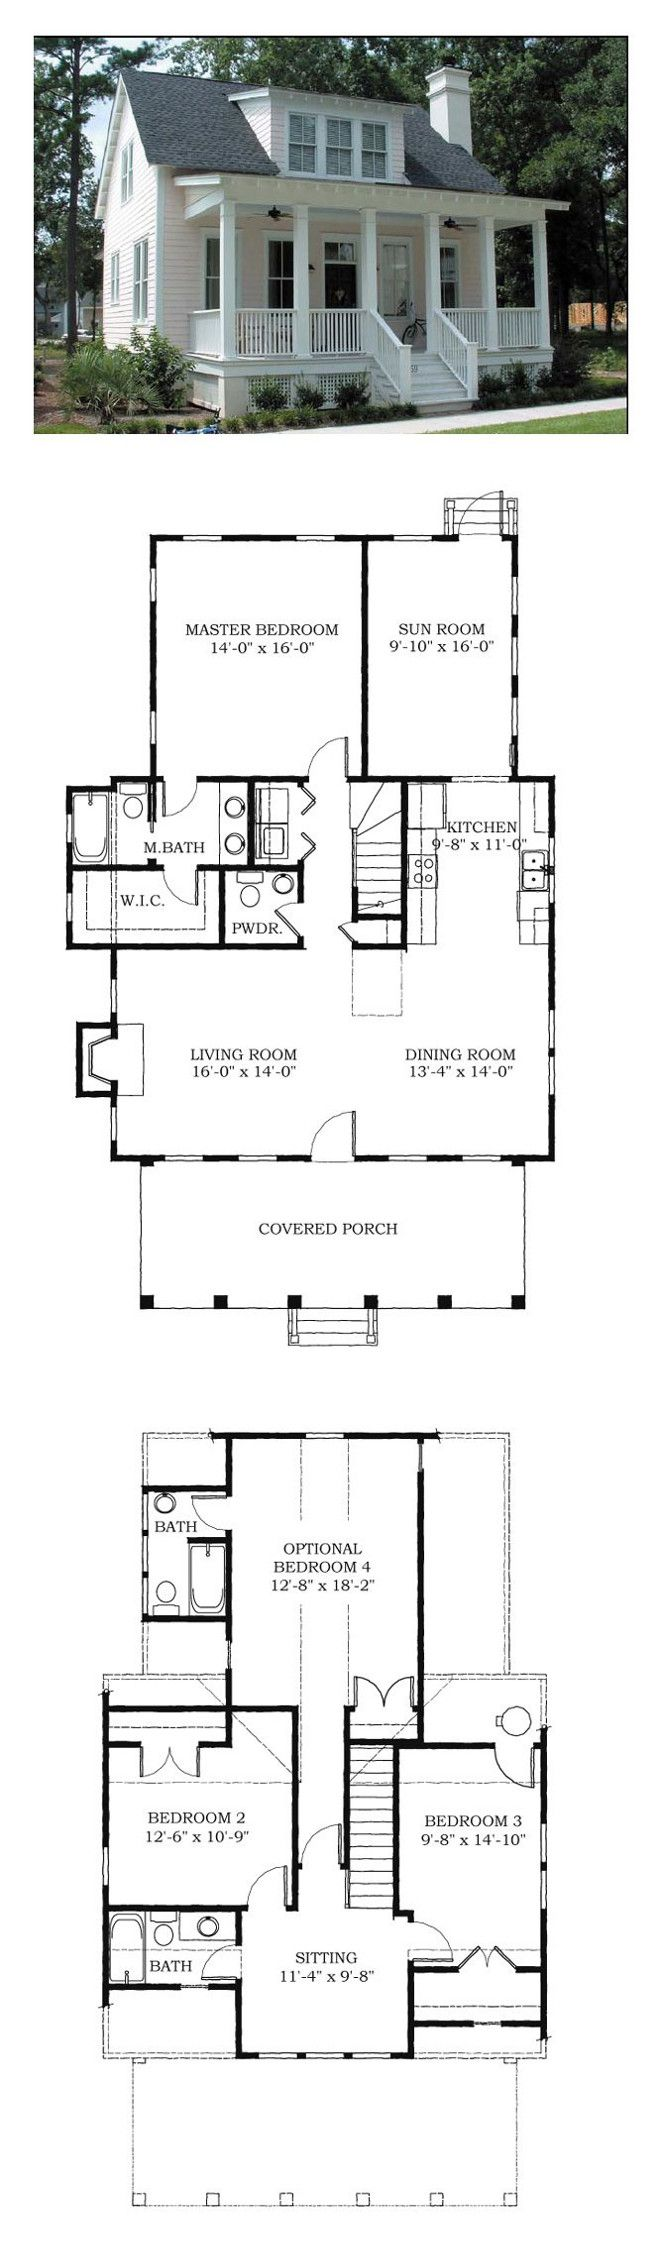 27 genius common house plans in awesome 25 best small houses ideas on pinterest homes beautiful home design ideas